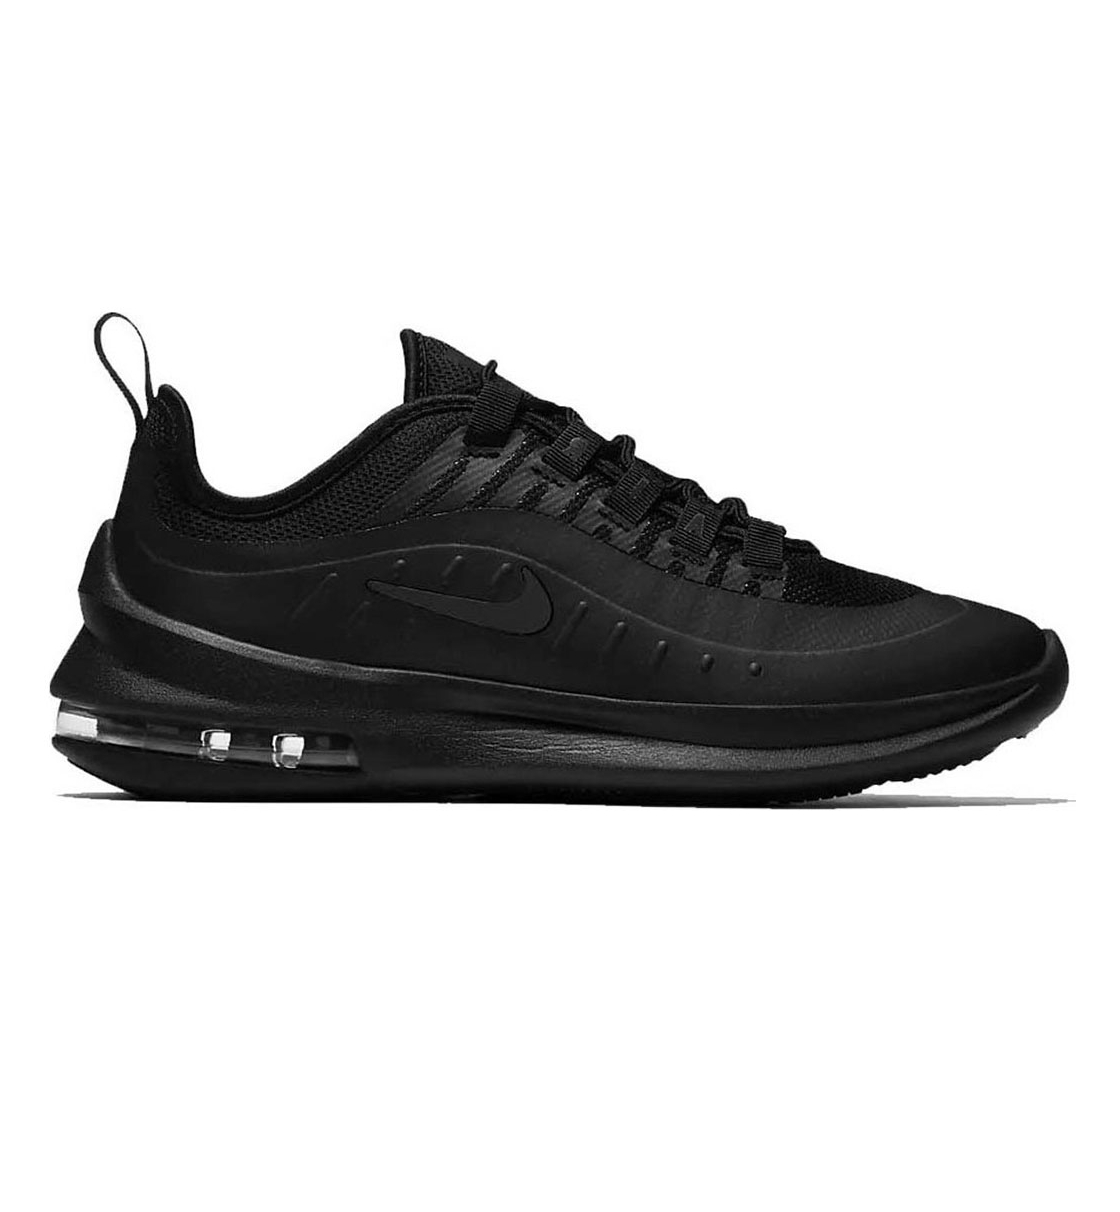 Nike Εφηβικό Παπούτσι Running Fw18 Air Max Axis (Gs) Ah5222